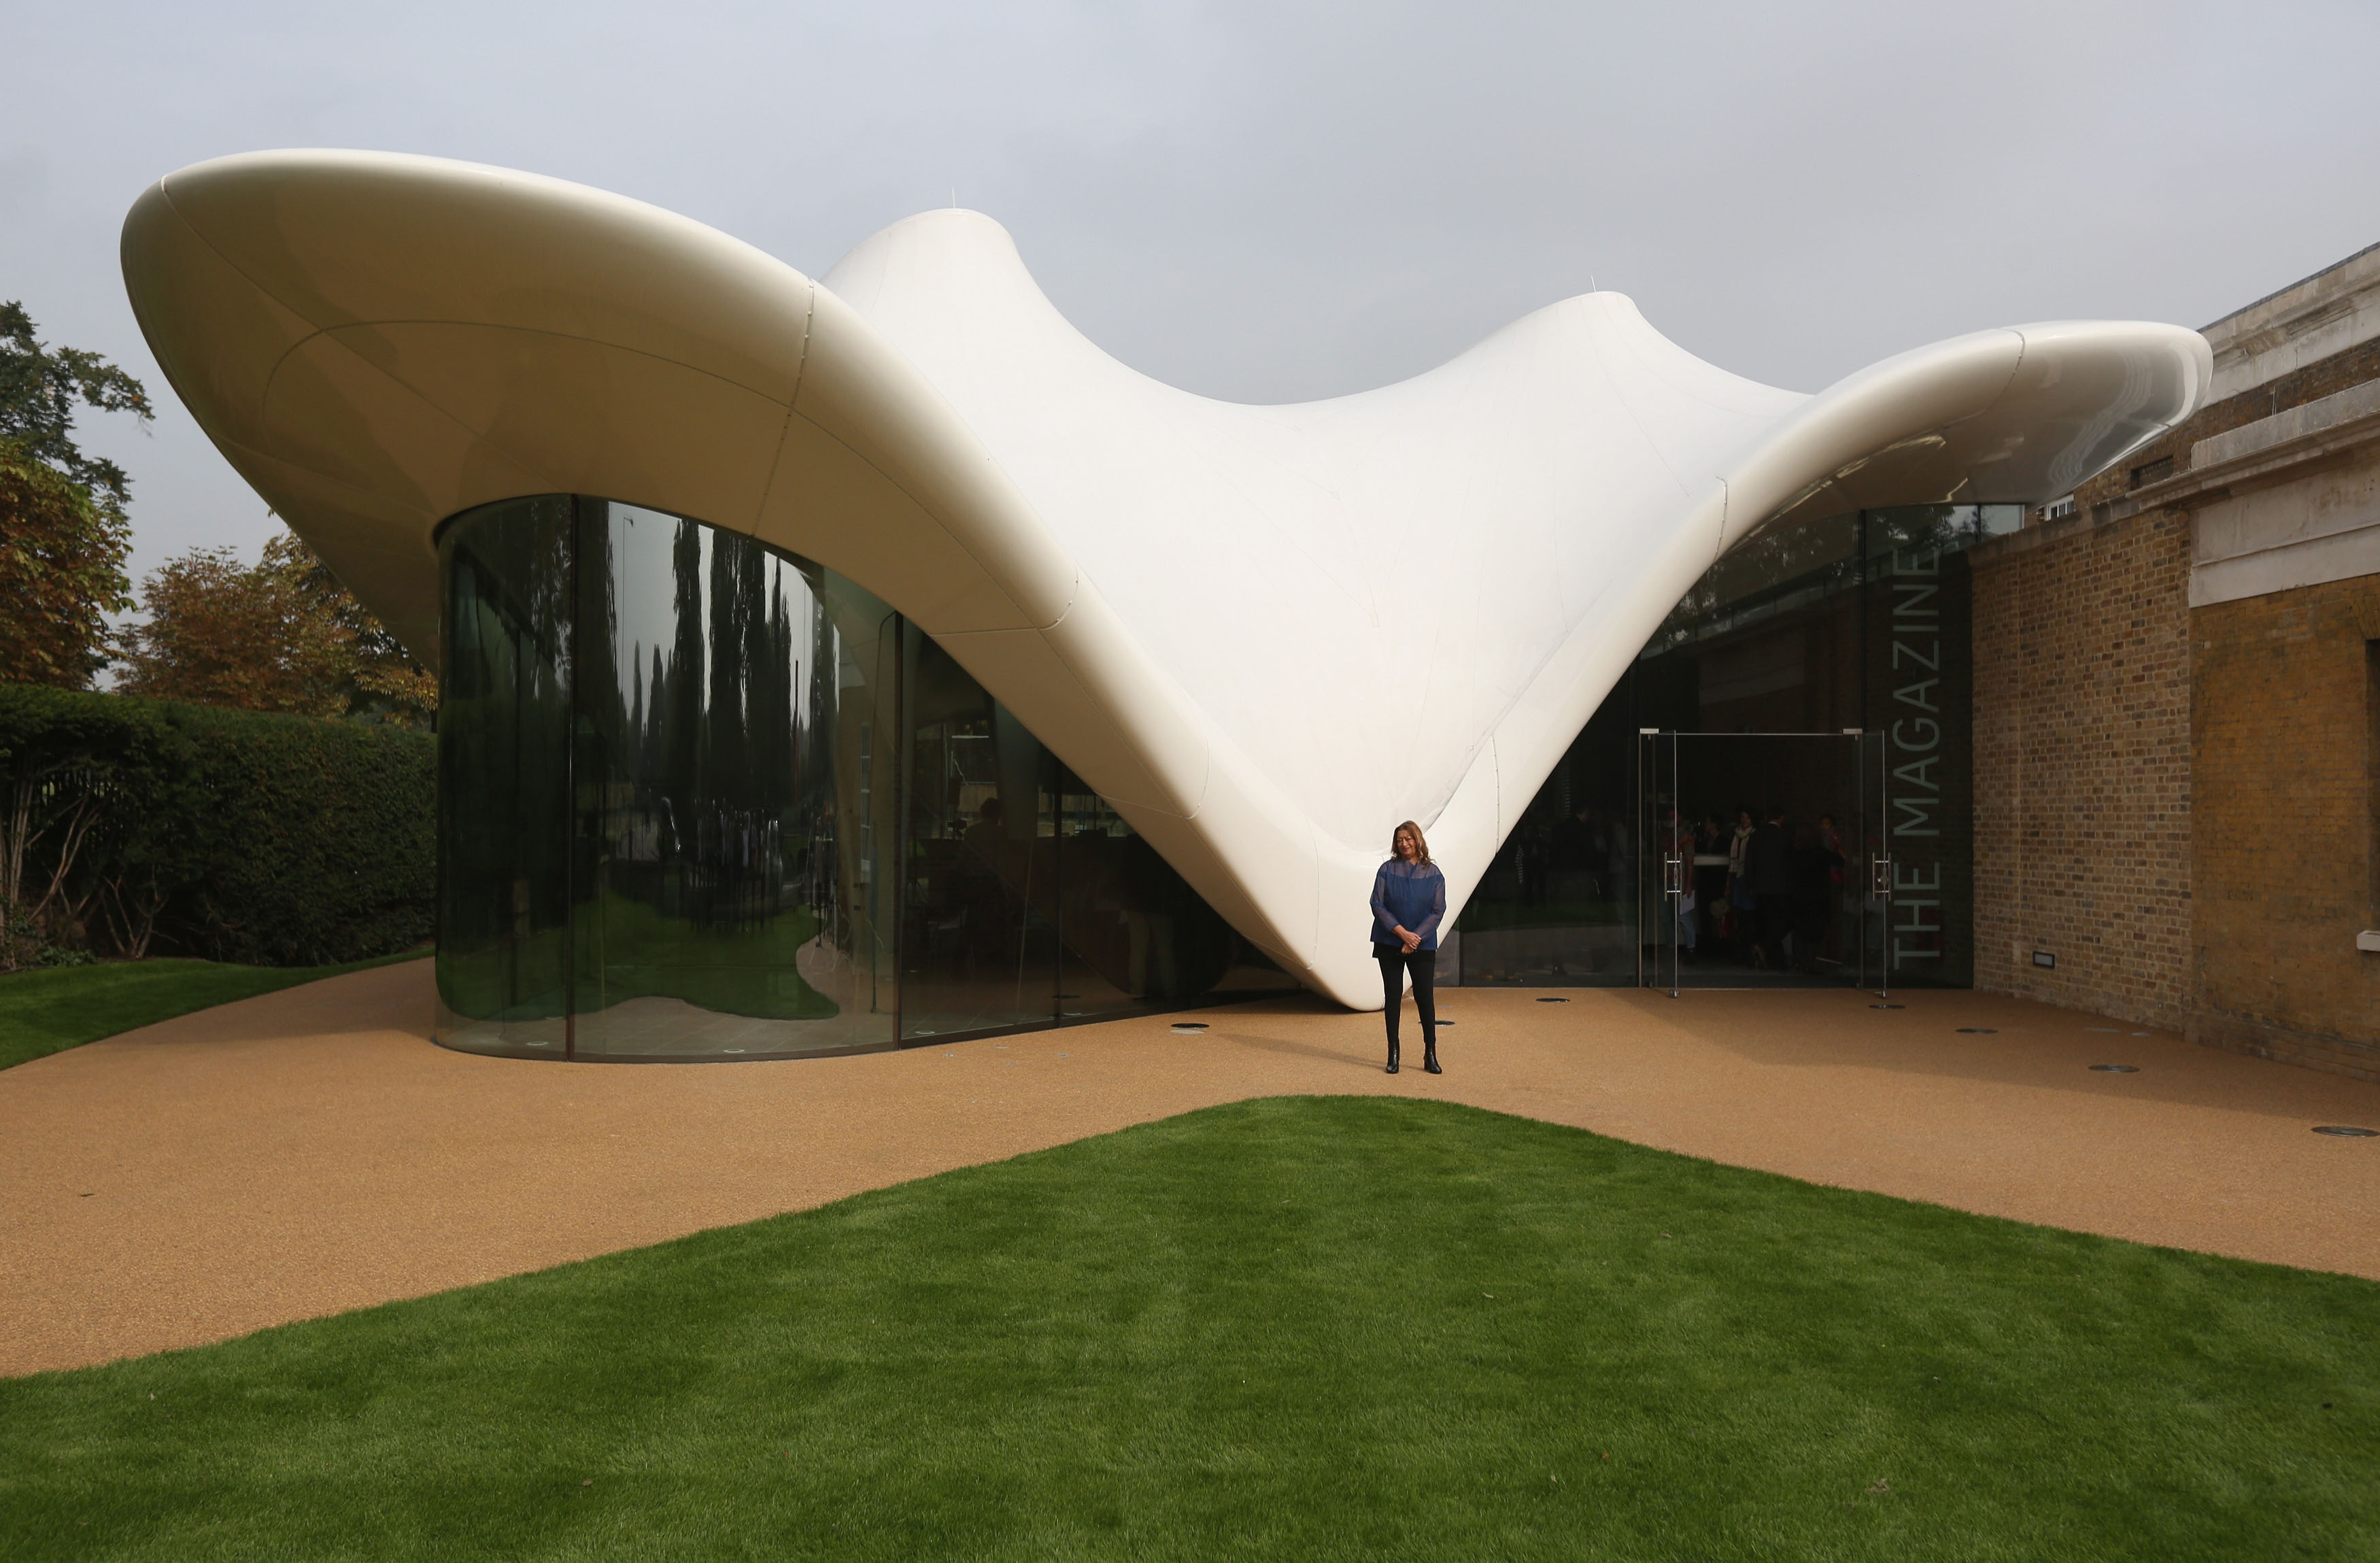 Gallery: Opening of the new Serpentine Sackler Gallery designed by Zaha Hadid